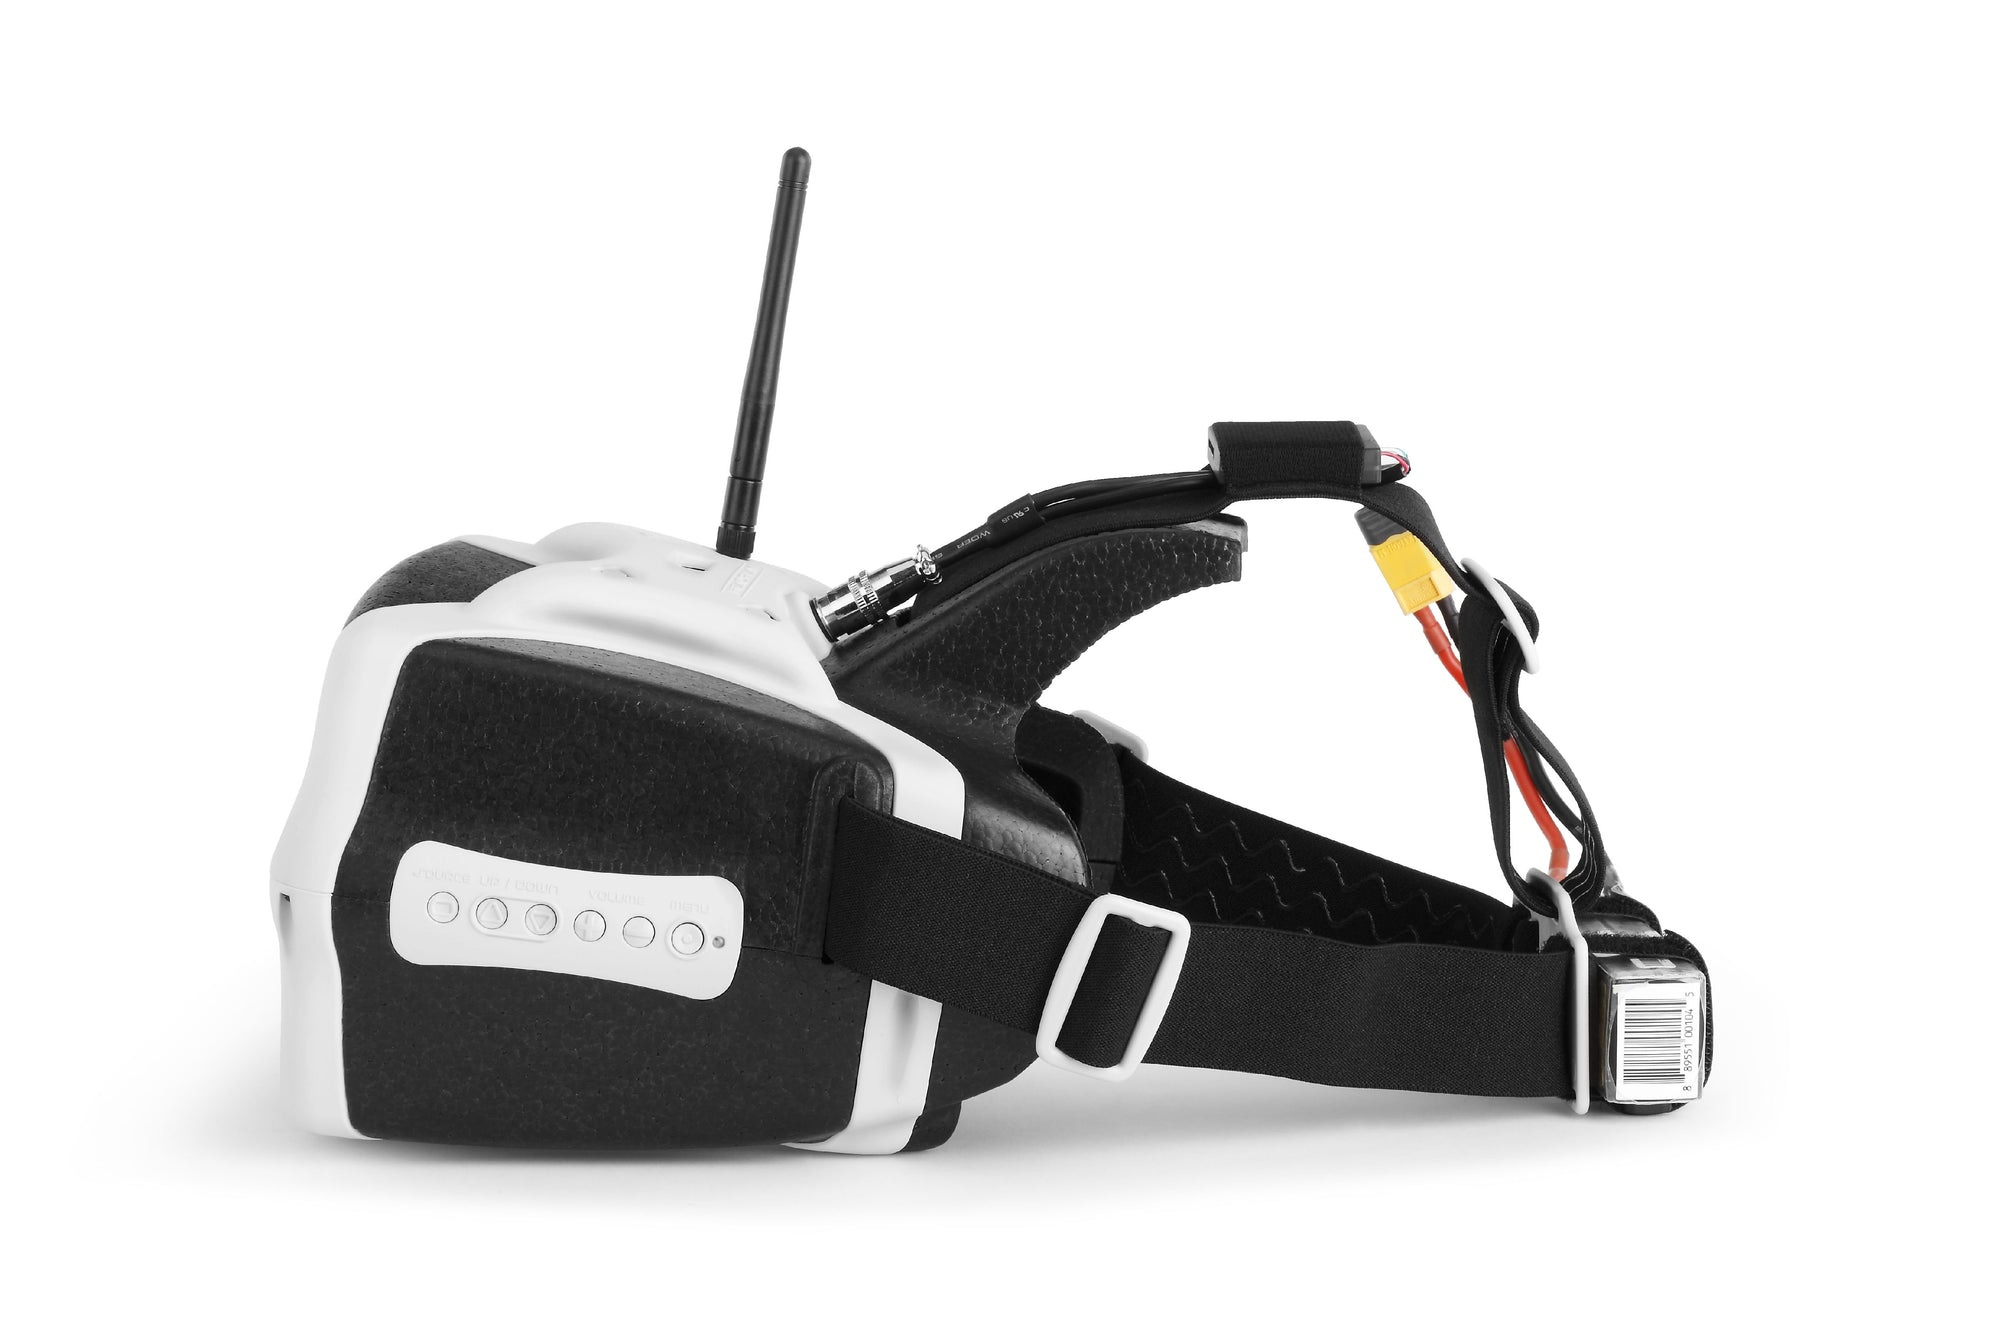 Headplay Head Mounted Display 1024 x 600 px with 5.8GHz receiver and HDMI input